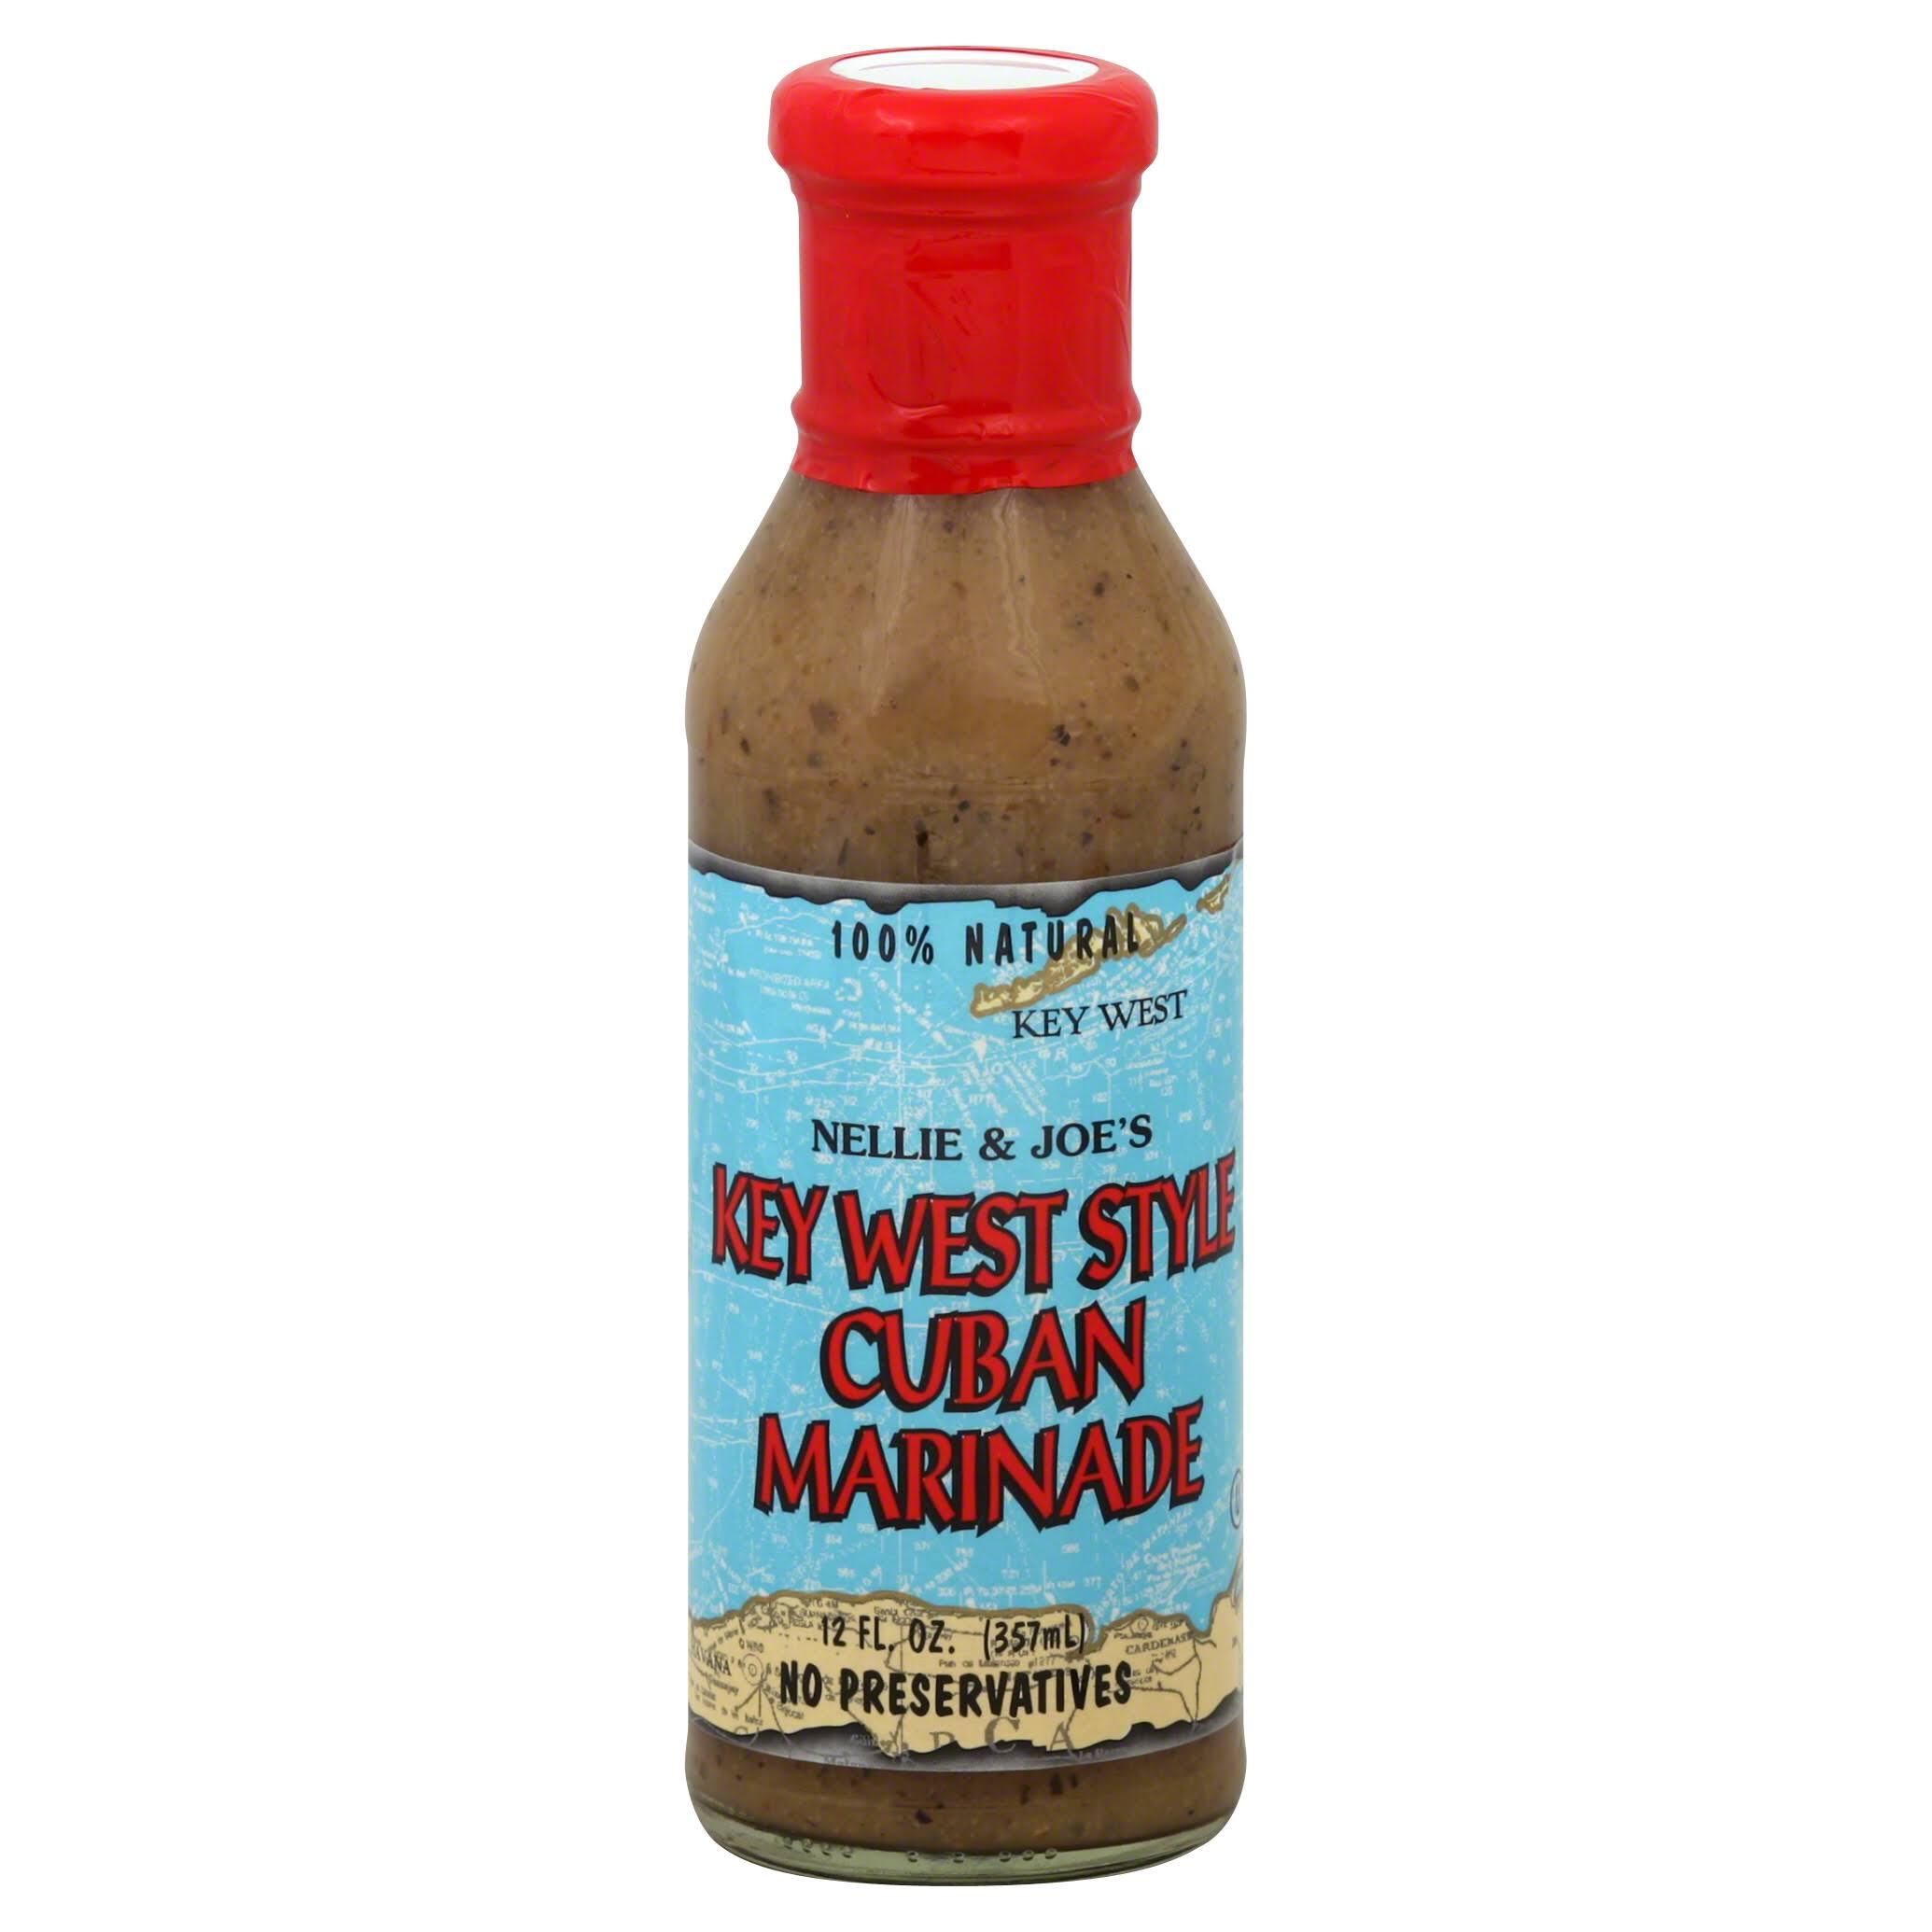 Nellie and Joe's Marinade Key West Style Cuban Marinade - 12oz